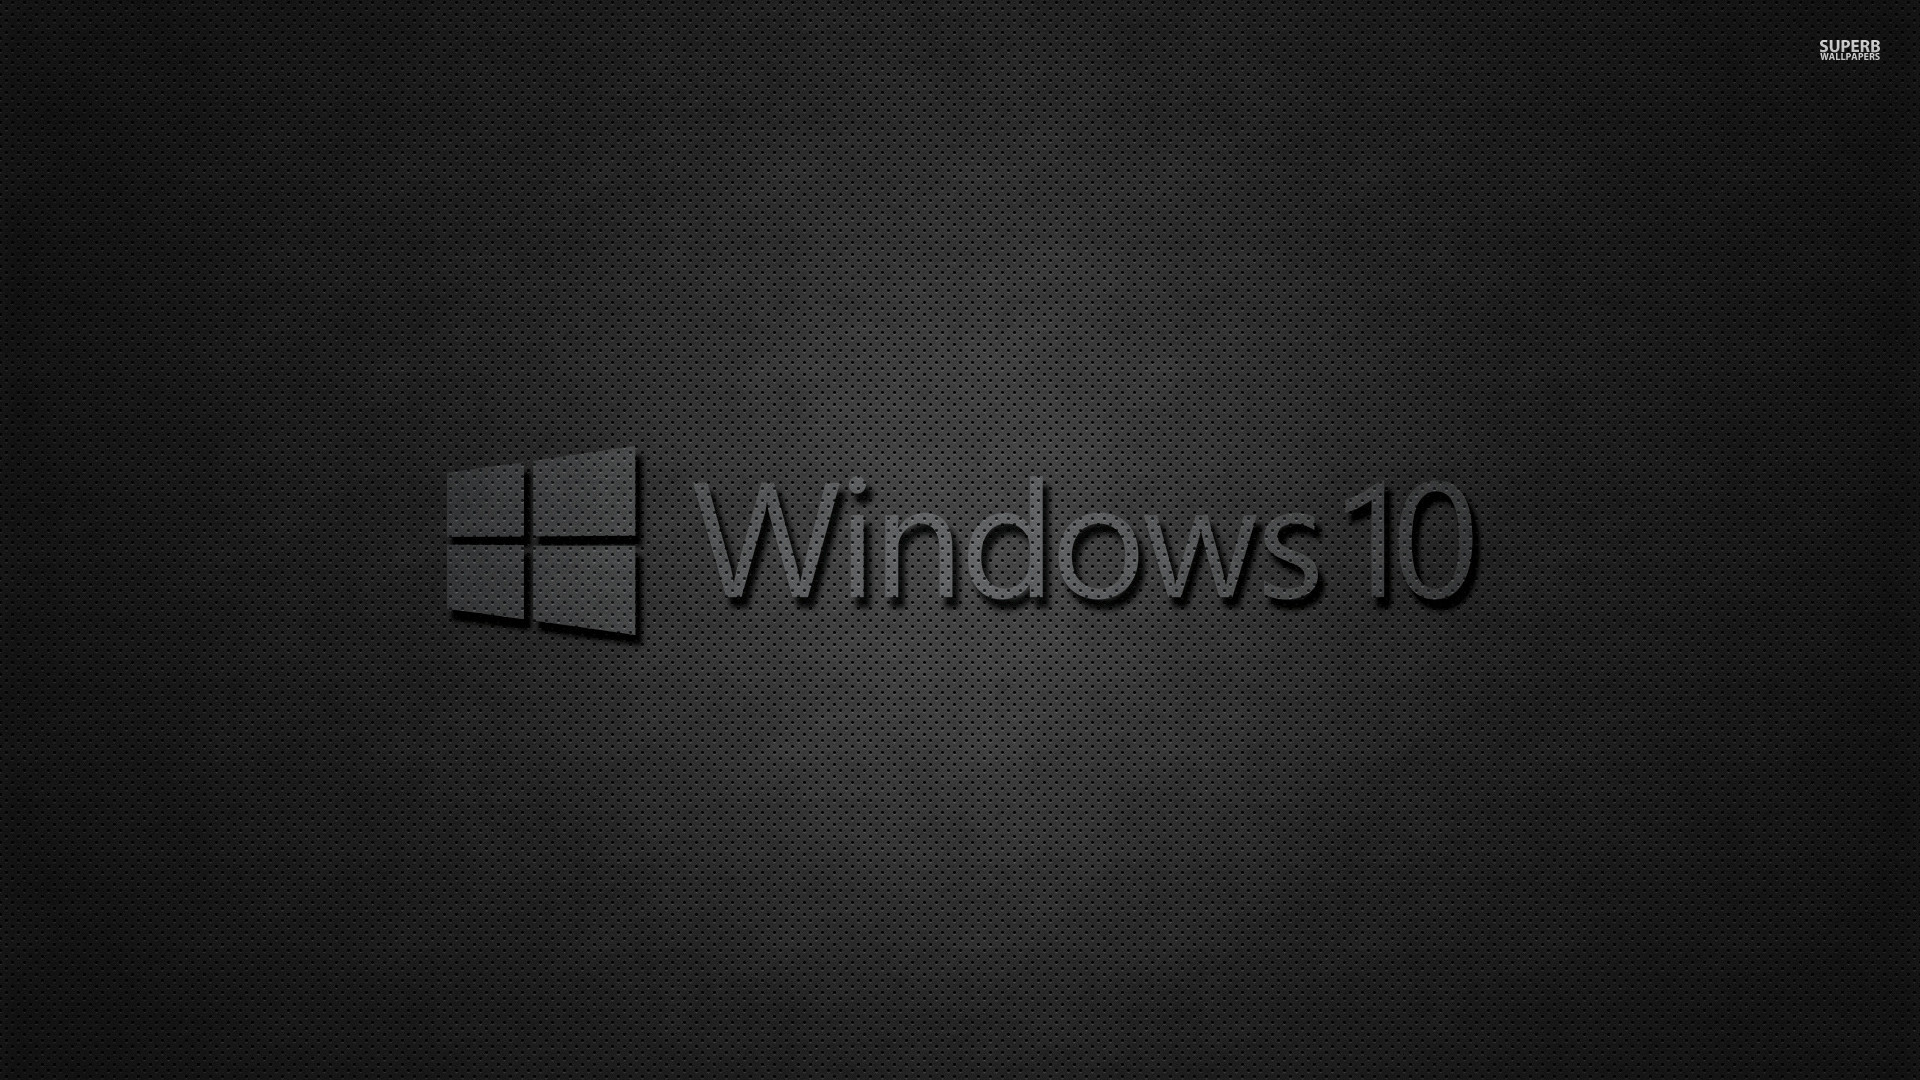 how to make windows 10 wallpaper hd